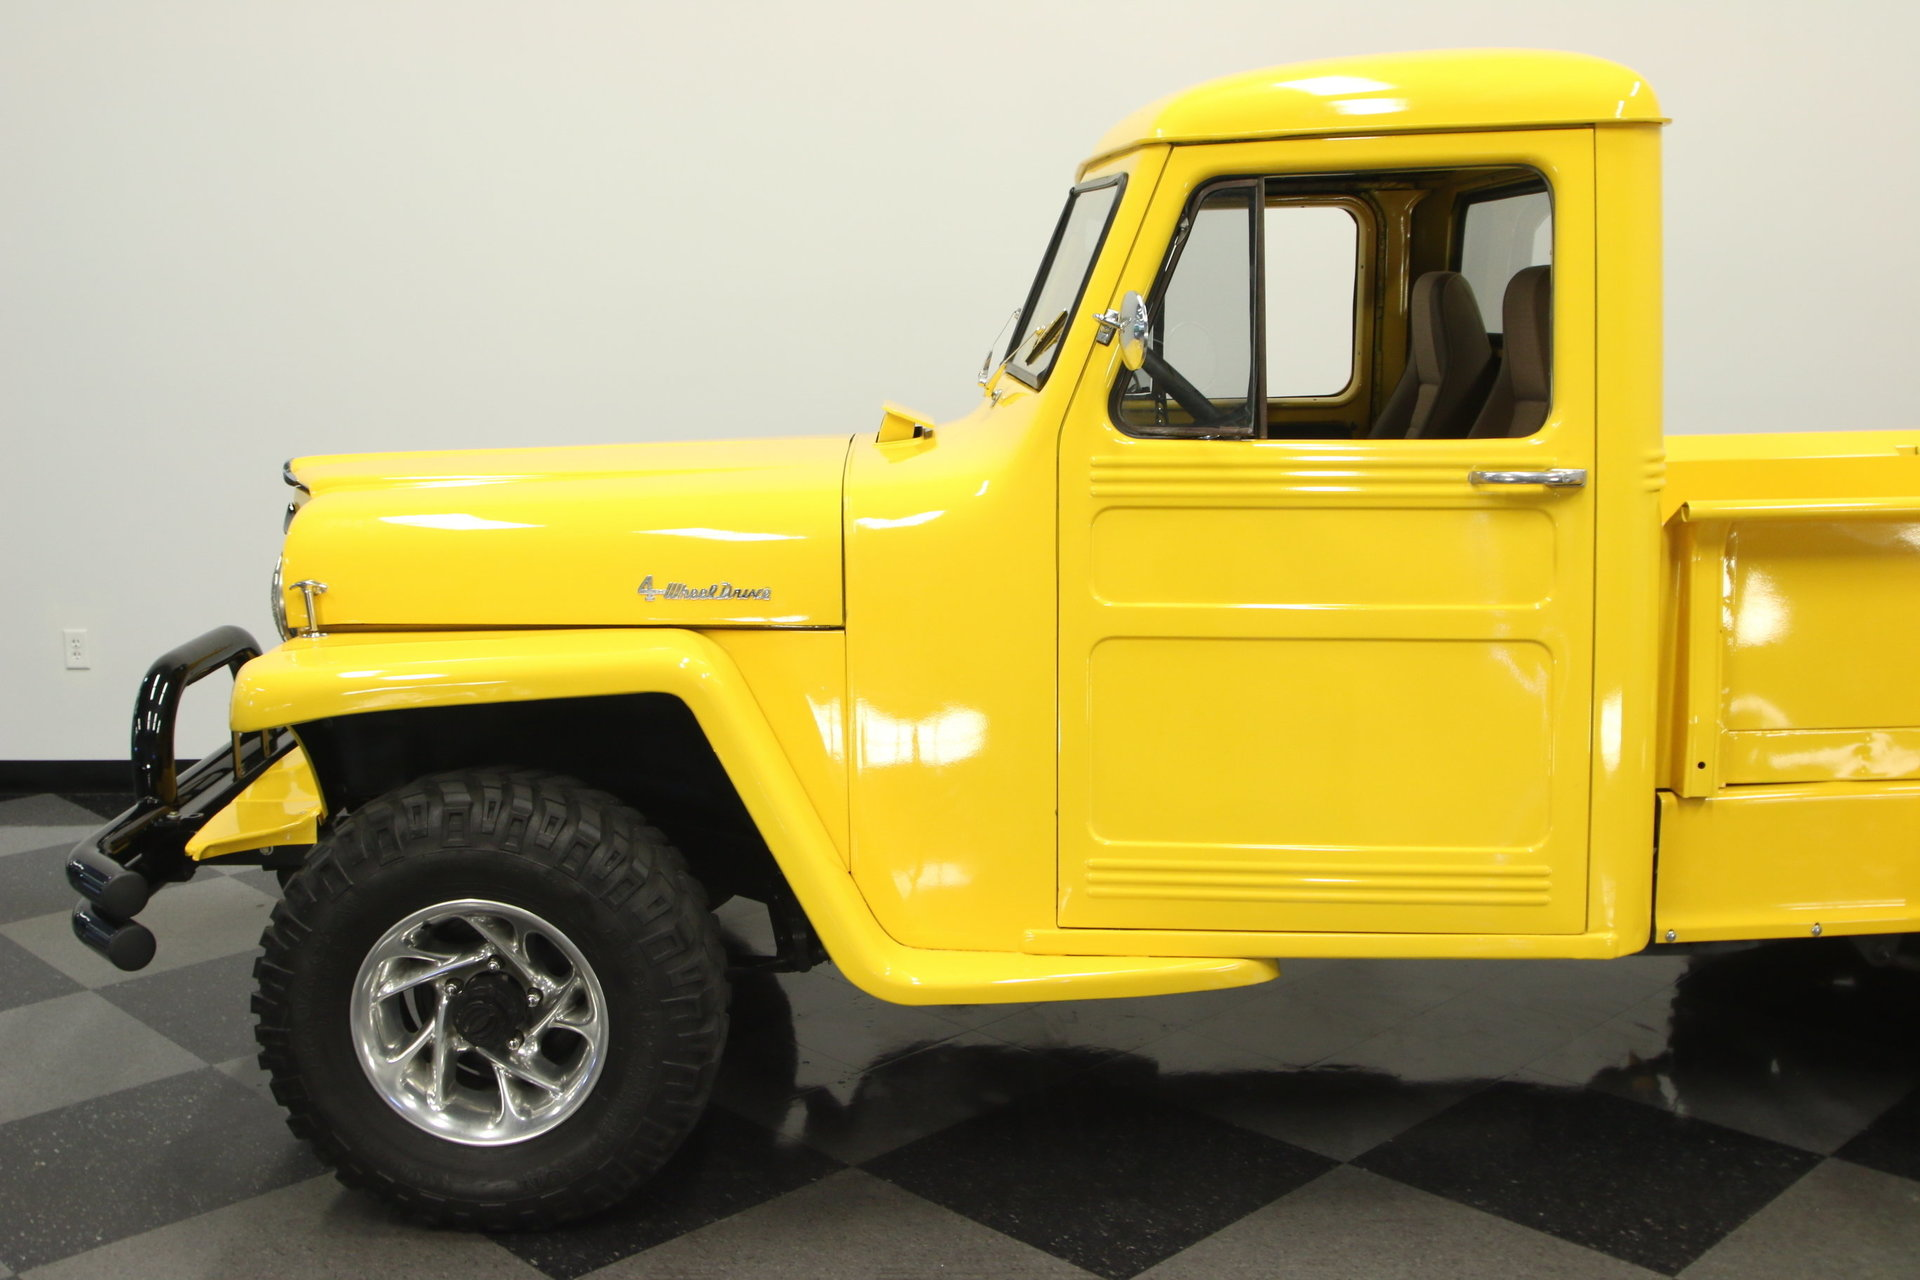 1955 Willys Pickup Streetside Classics The Nations Trusted 1950 Jeep Truck View 360